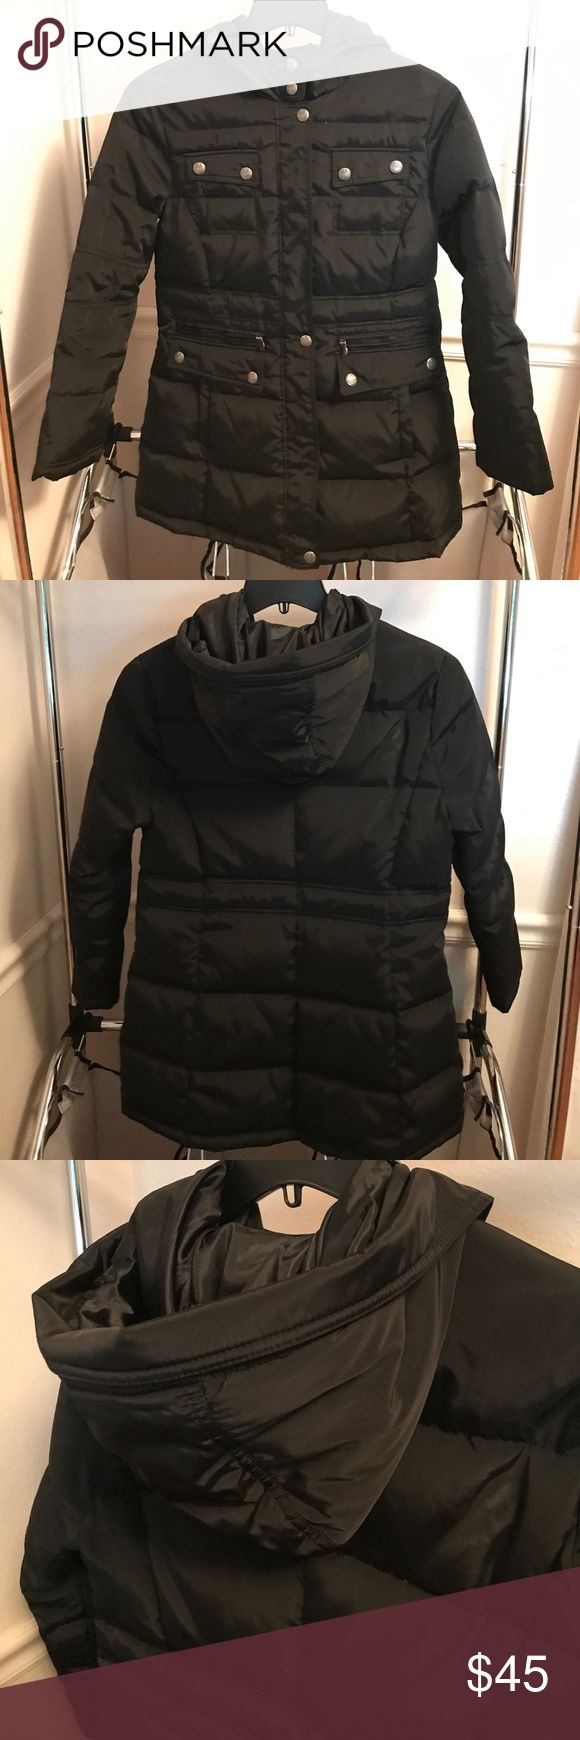 """Laundry by Shelli Segal Puffy Coat Petite sizes black puffy winter coat! I typically don't buy petite sizes and am 5'4"""", but this fit me perfectly. Waist: 40"""", Length: 31"""", Sleeve: 23"""" Laundry By Shelli Segal Jackets & Coats Puffers"""